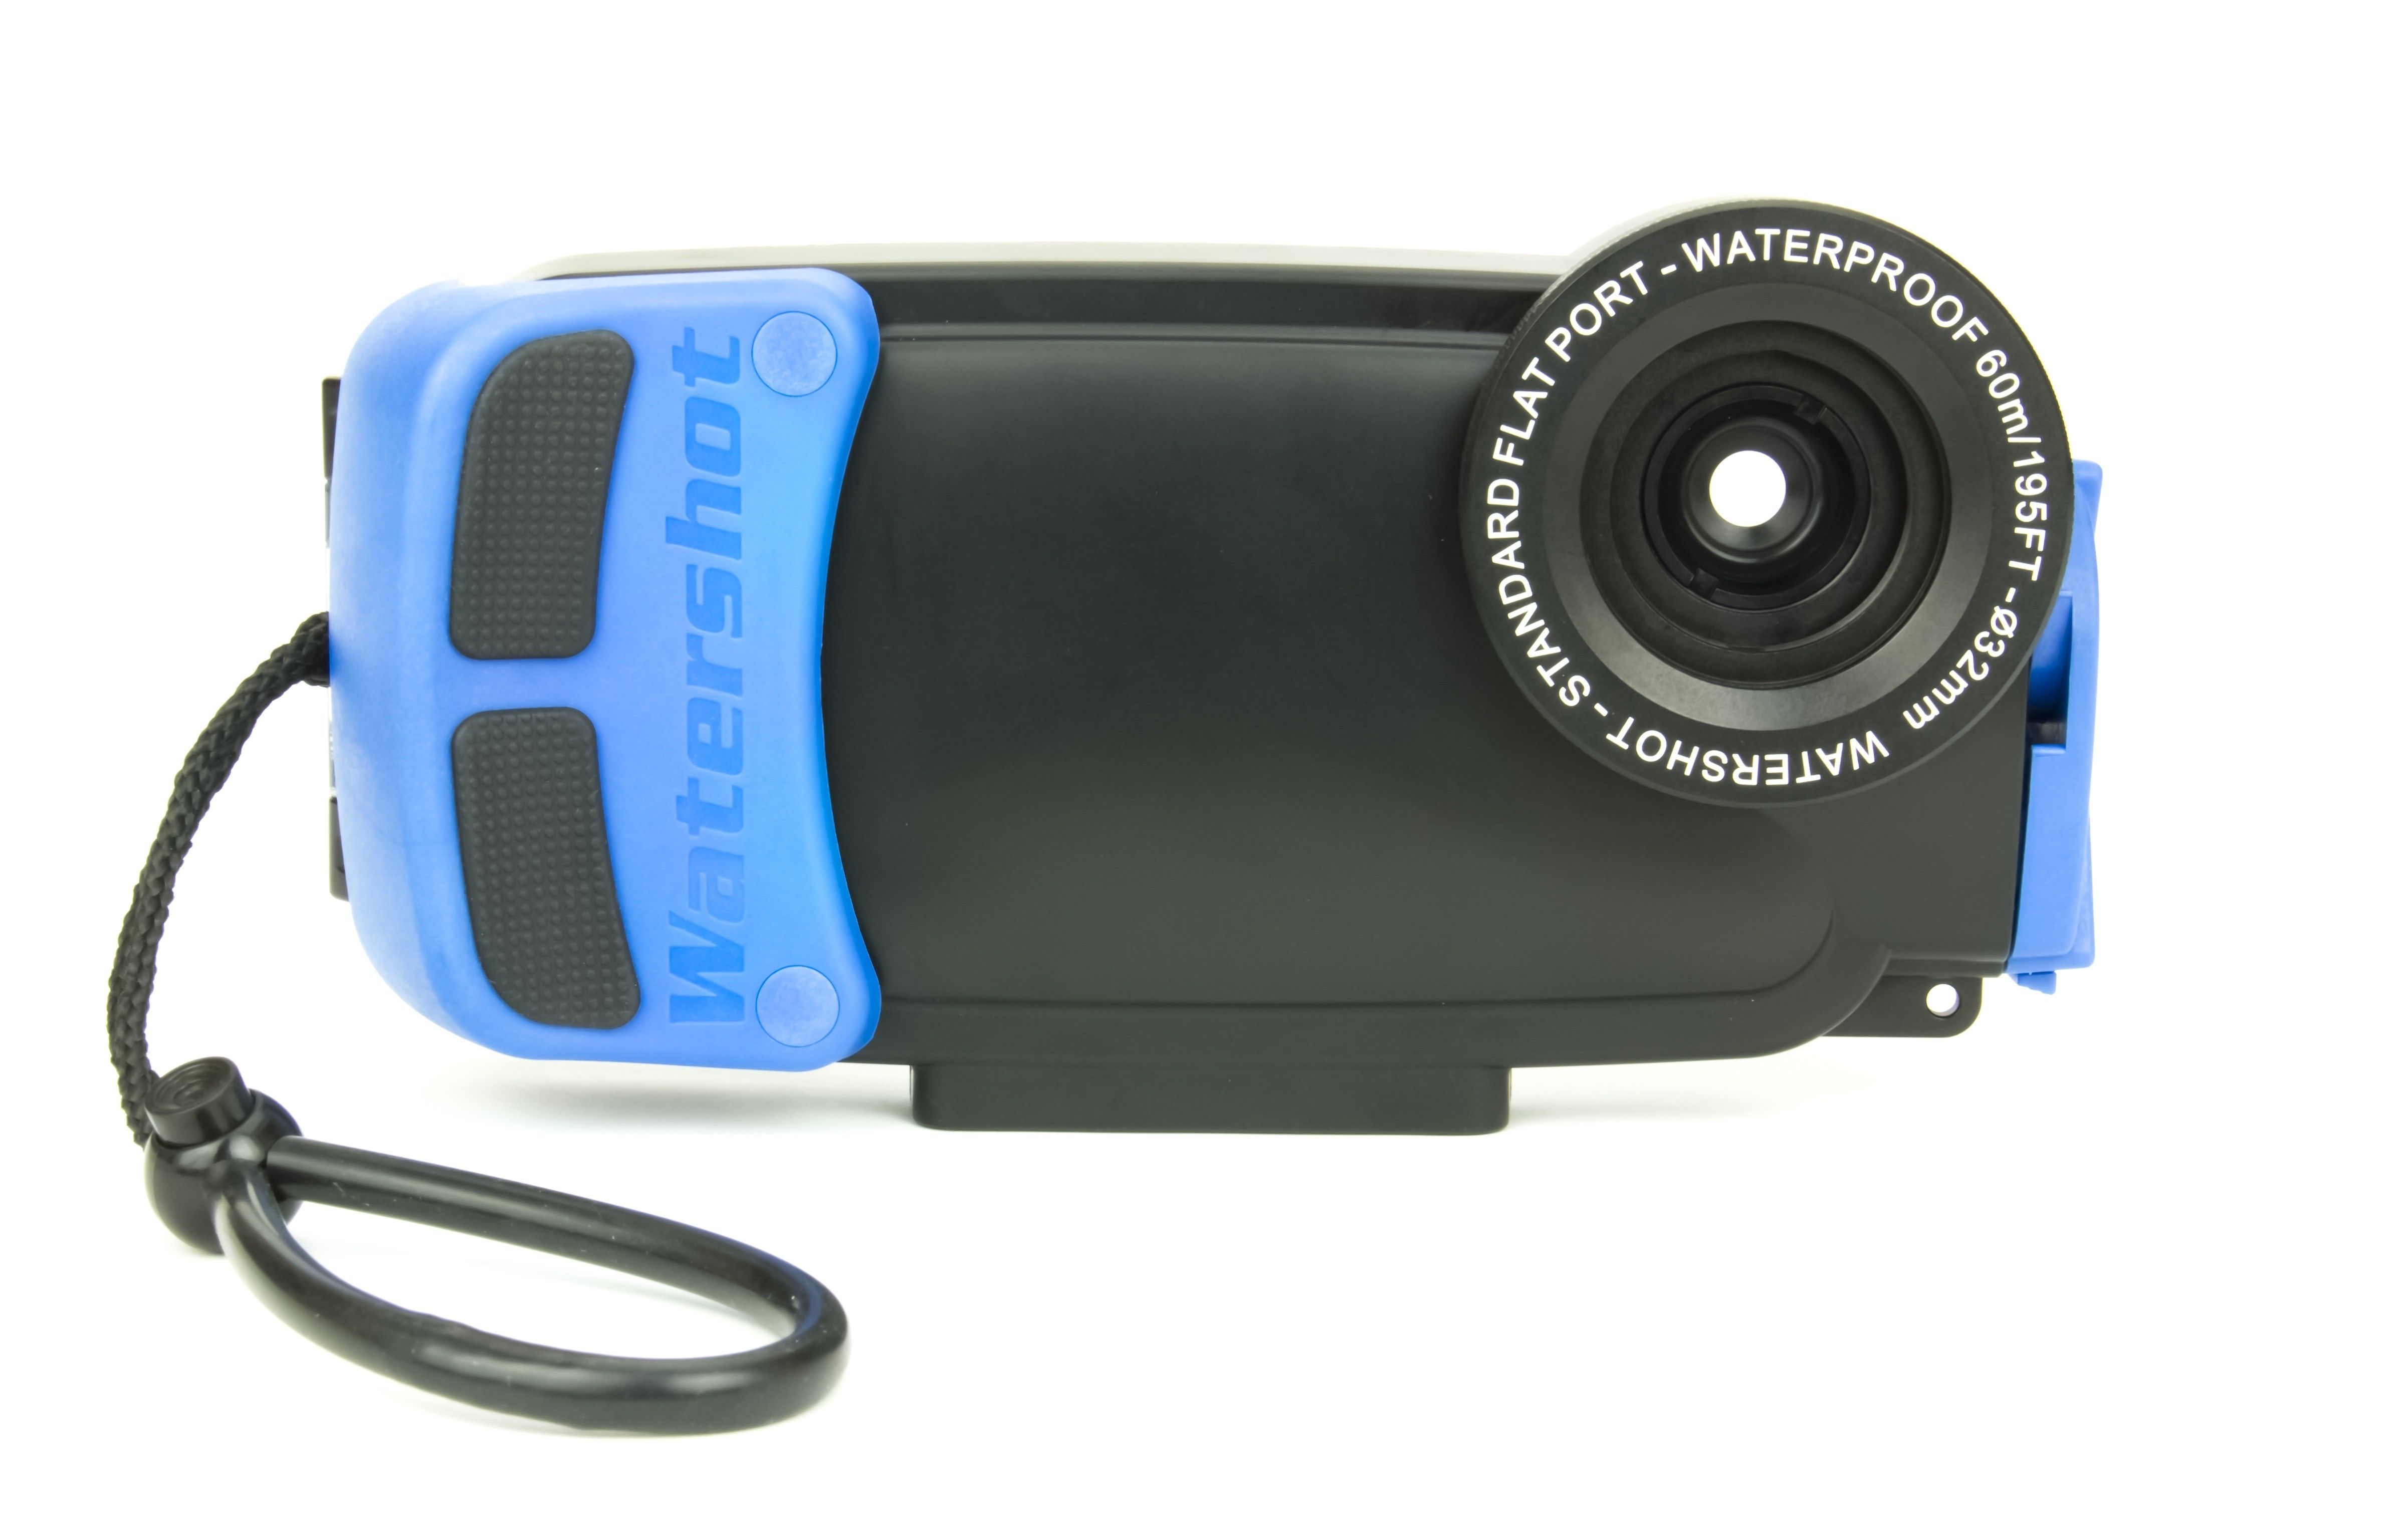 Watershot Pro Line Housing Iphone 6 S Black Snorkel Blue Sold Out No Restock Underwater Camera Underwater Camera Housing Underwater House